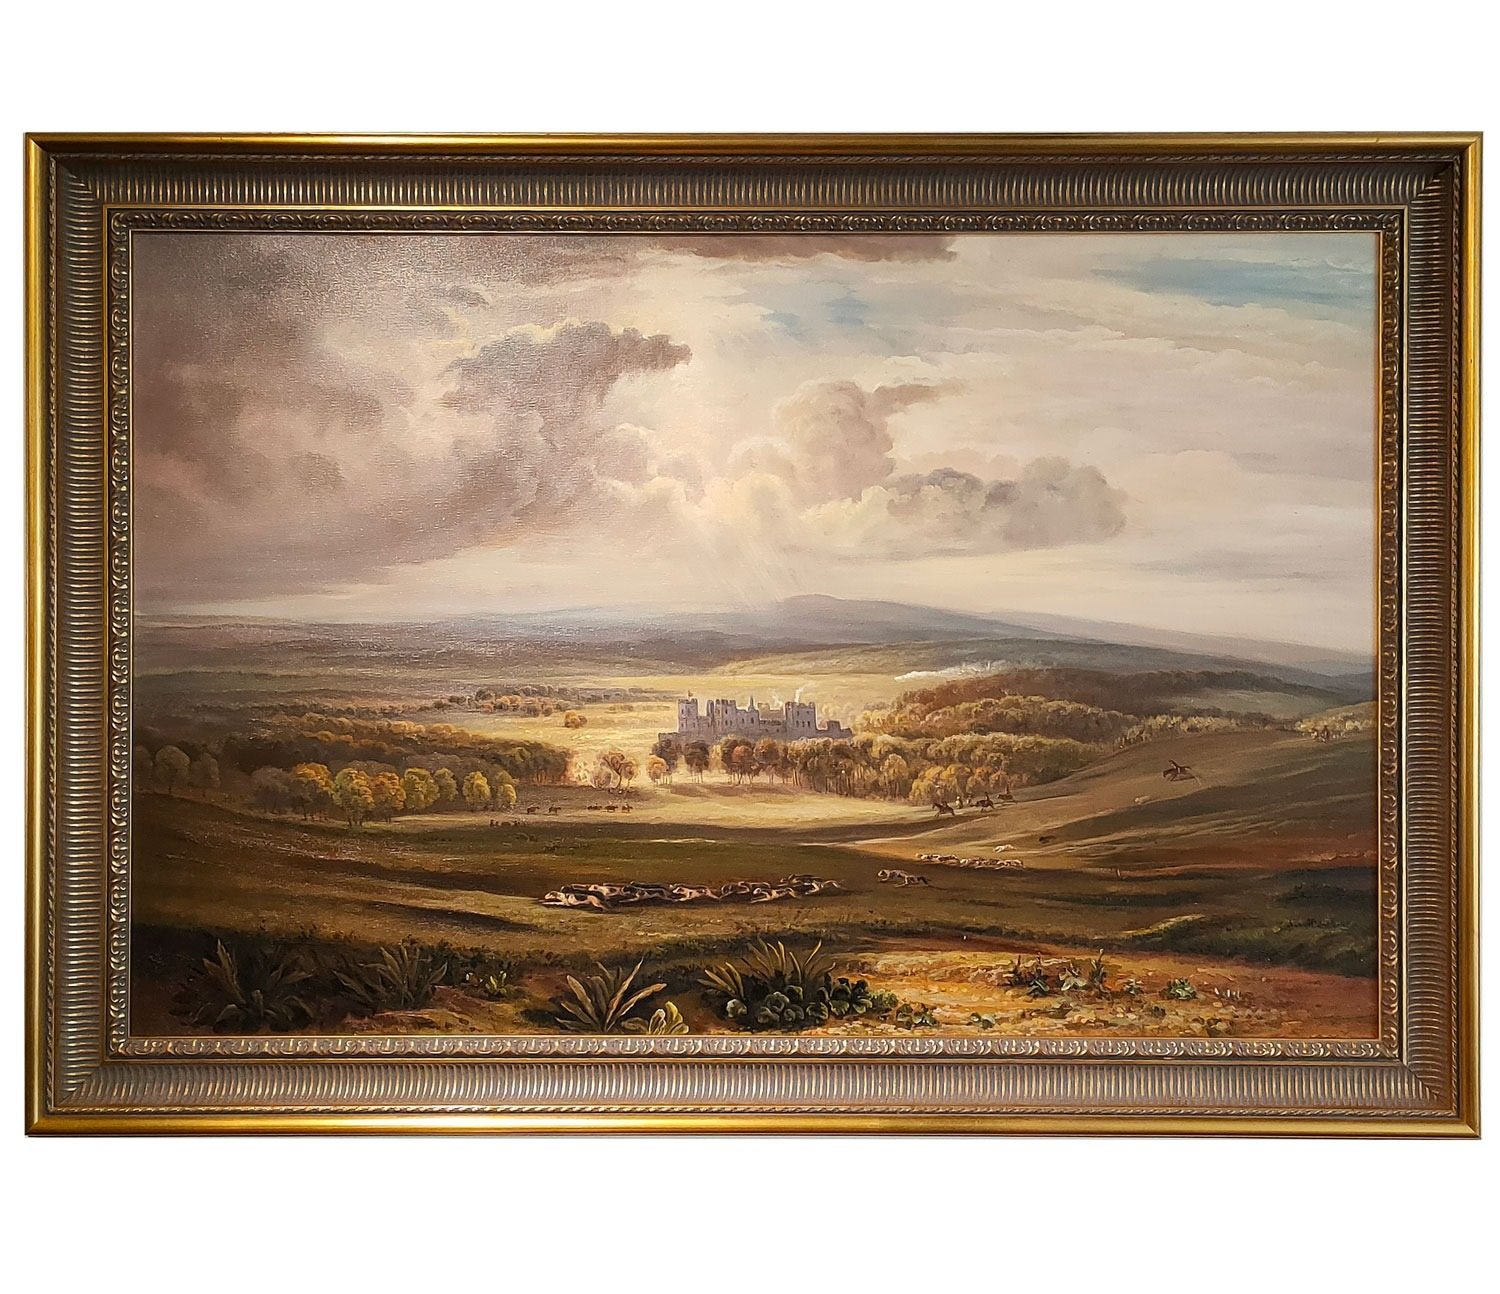 Oil painting after 'Raby Castle, the Seat of the Earl of Darlington' by JMW Turner